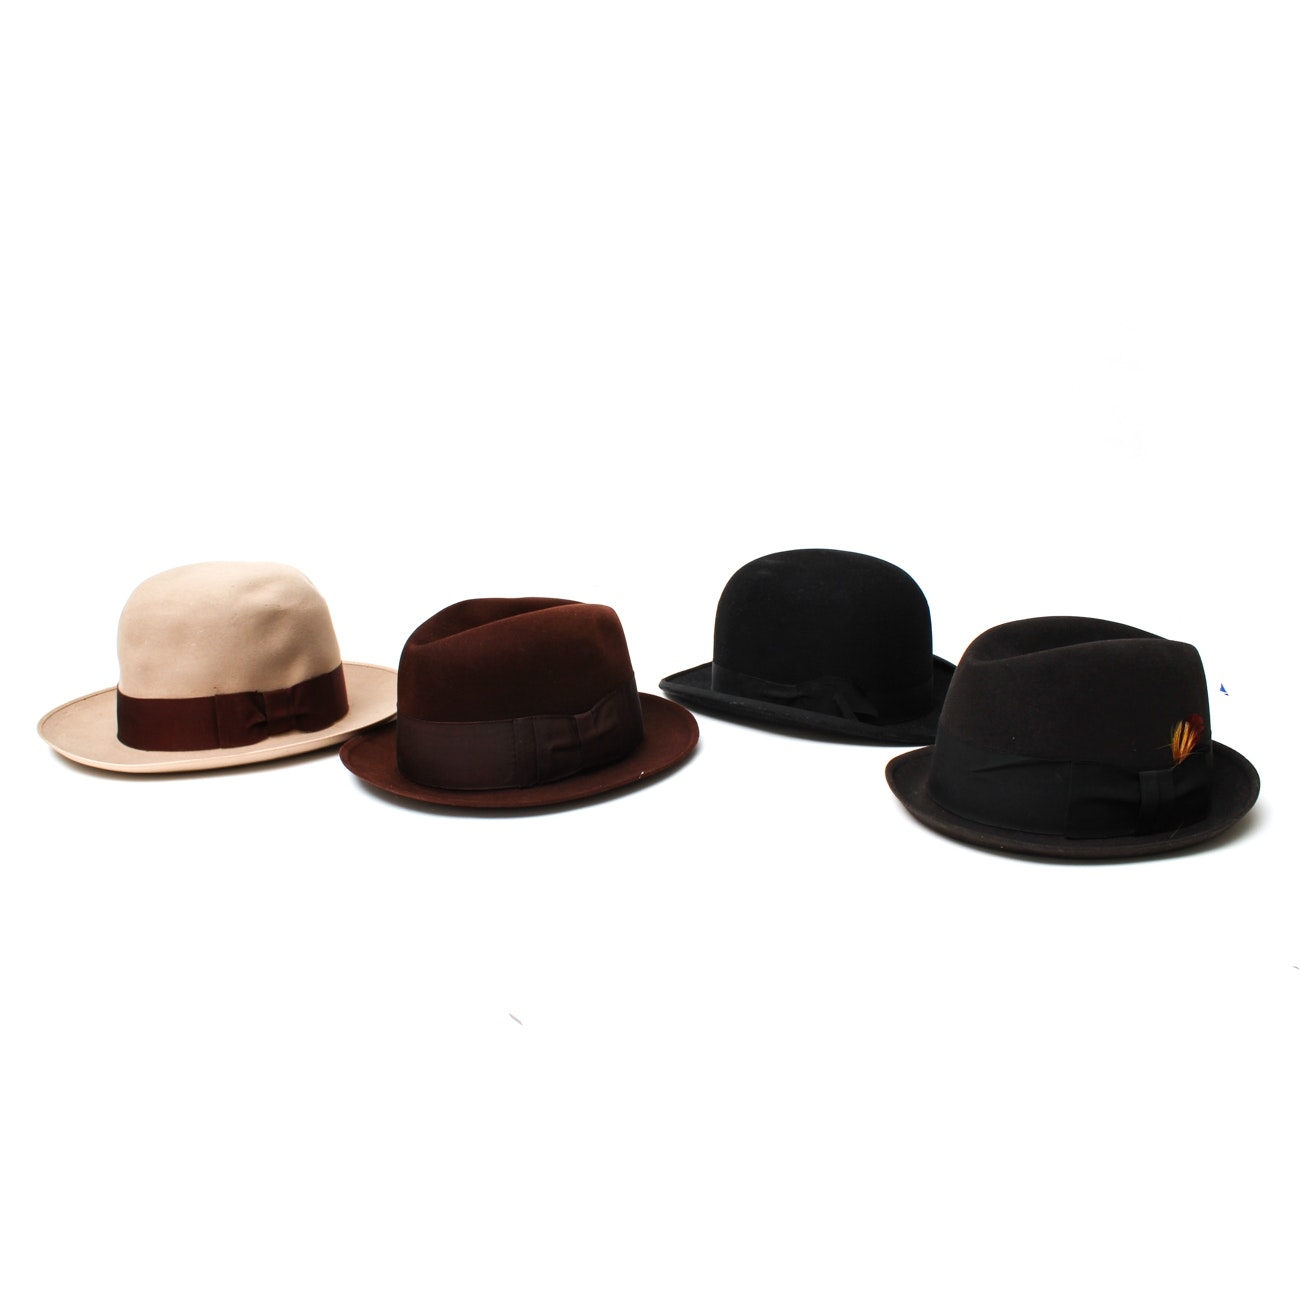 Men's Vintage Hats Including Dobbs